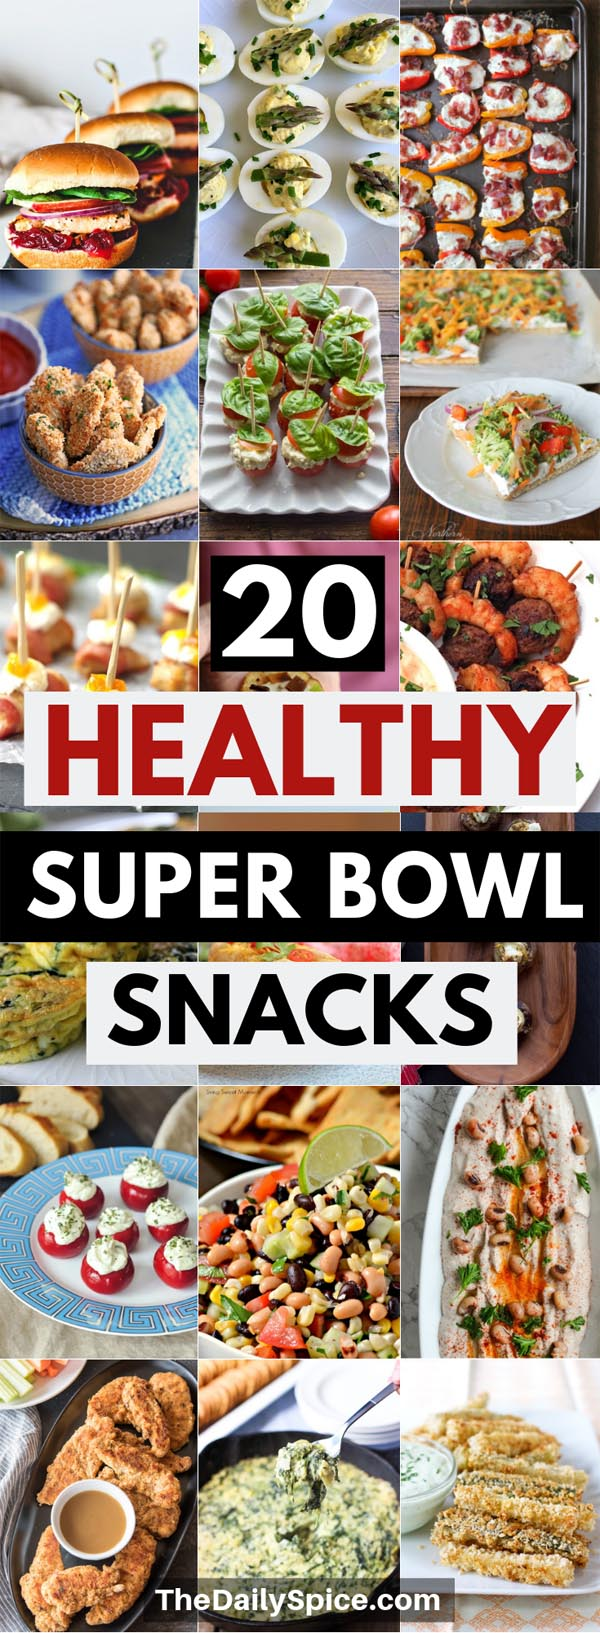 Healthy super bowl snacks